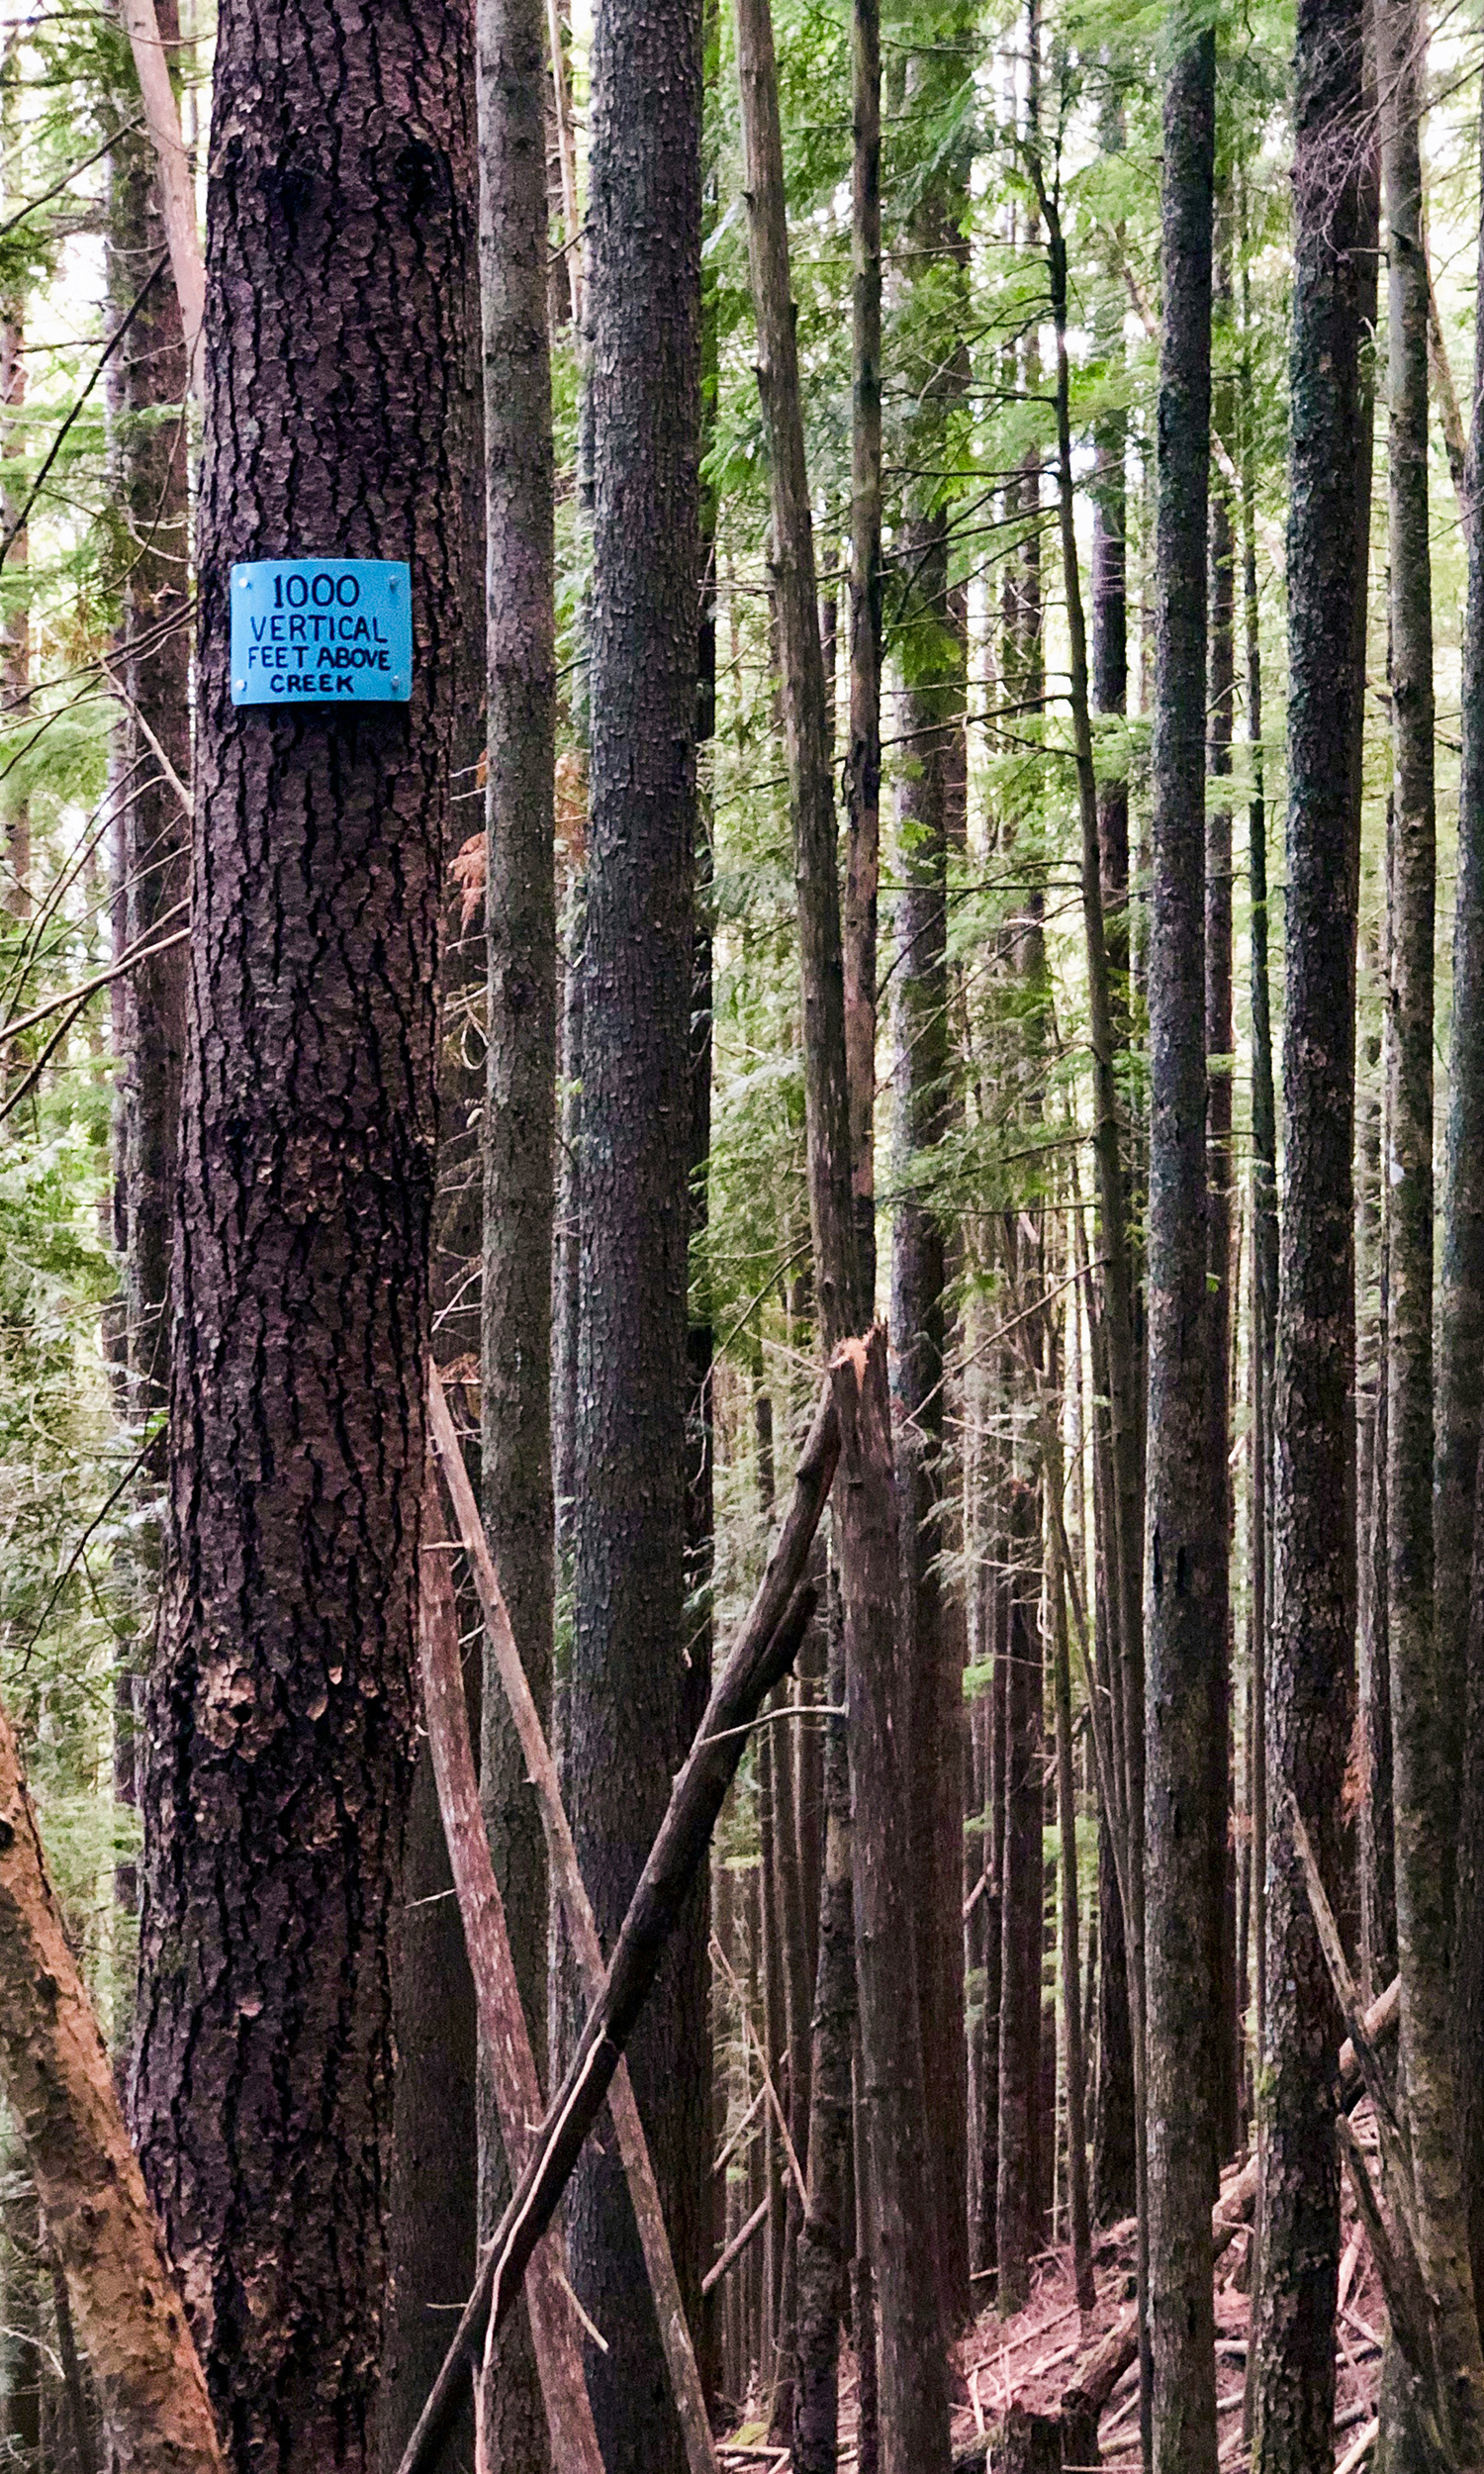 <p>Elevation markers are affixed to trees along the trail. These little signs become motivational after 45-minutes of continuous uphill climbing. (Image:{&nbsp;}Rachael A. Jones / Seattle Refined){&nbsp;}</p>